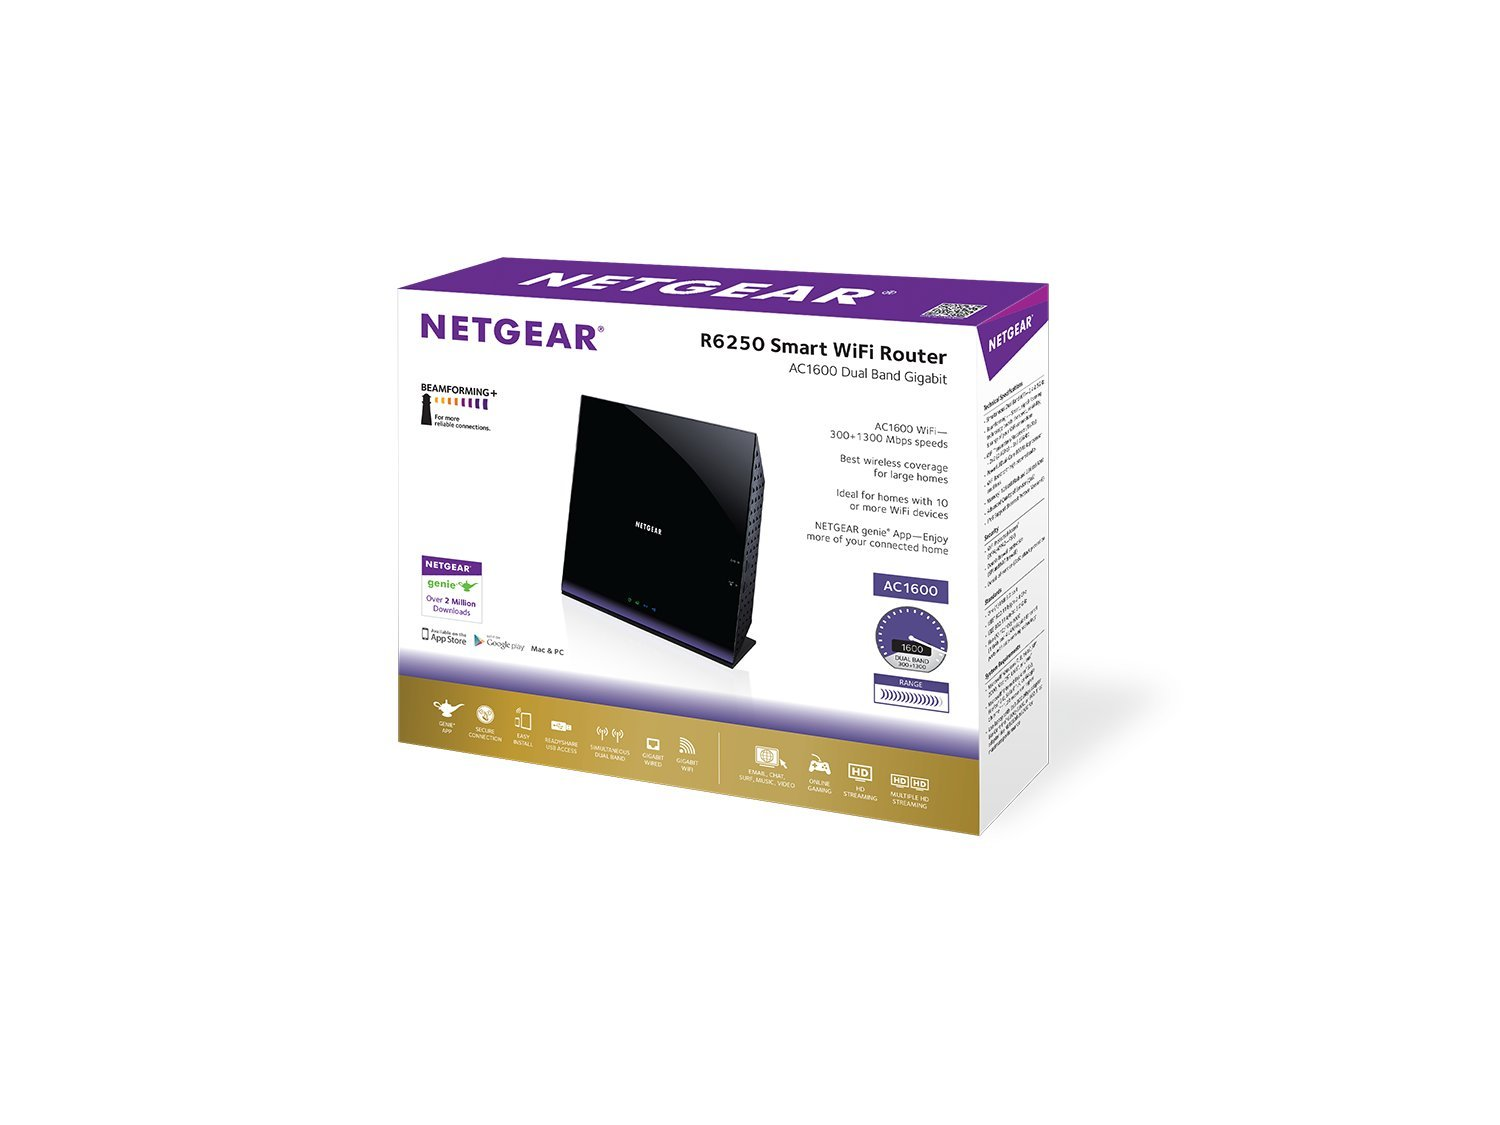 Netgear Ac1600 Dual Band Wi Fi Gigabit Router R6250 How To Extend Wireless Internet For Full Coverage In Large Homes Computers Accessories